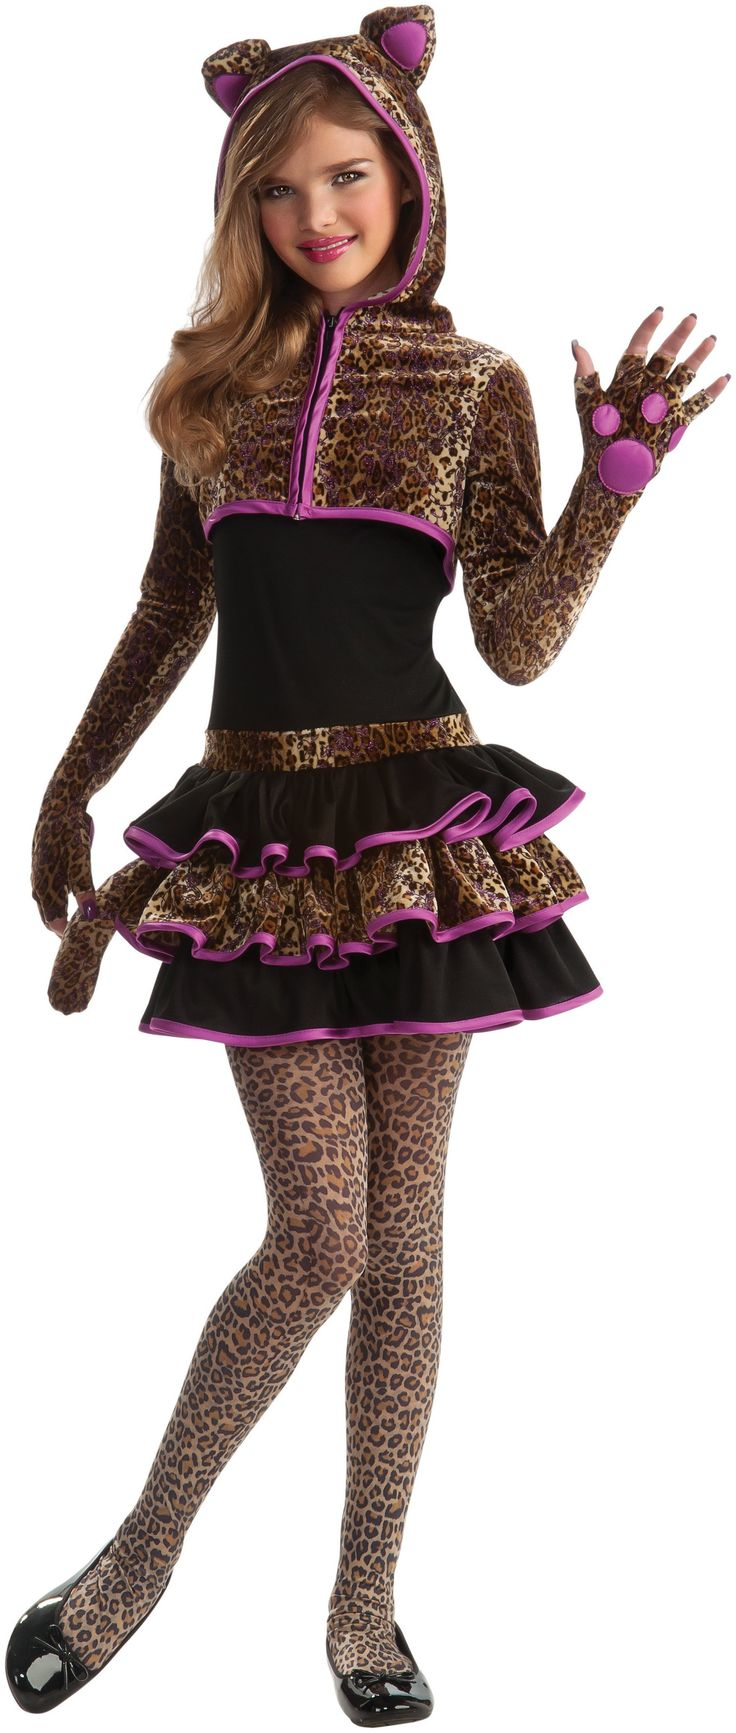 Leopard Tween Costume from Buycostumes.com